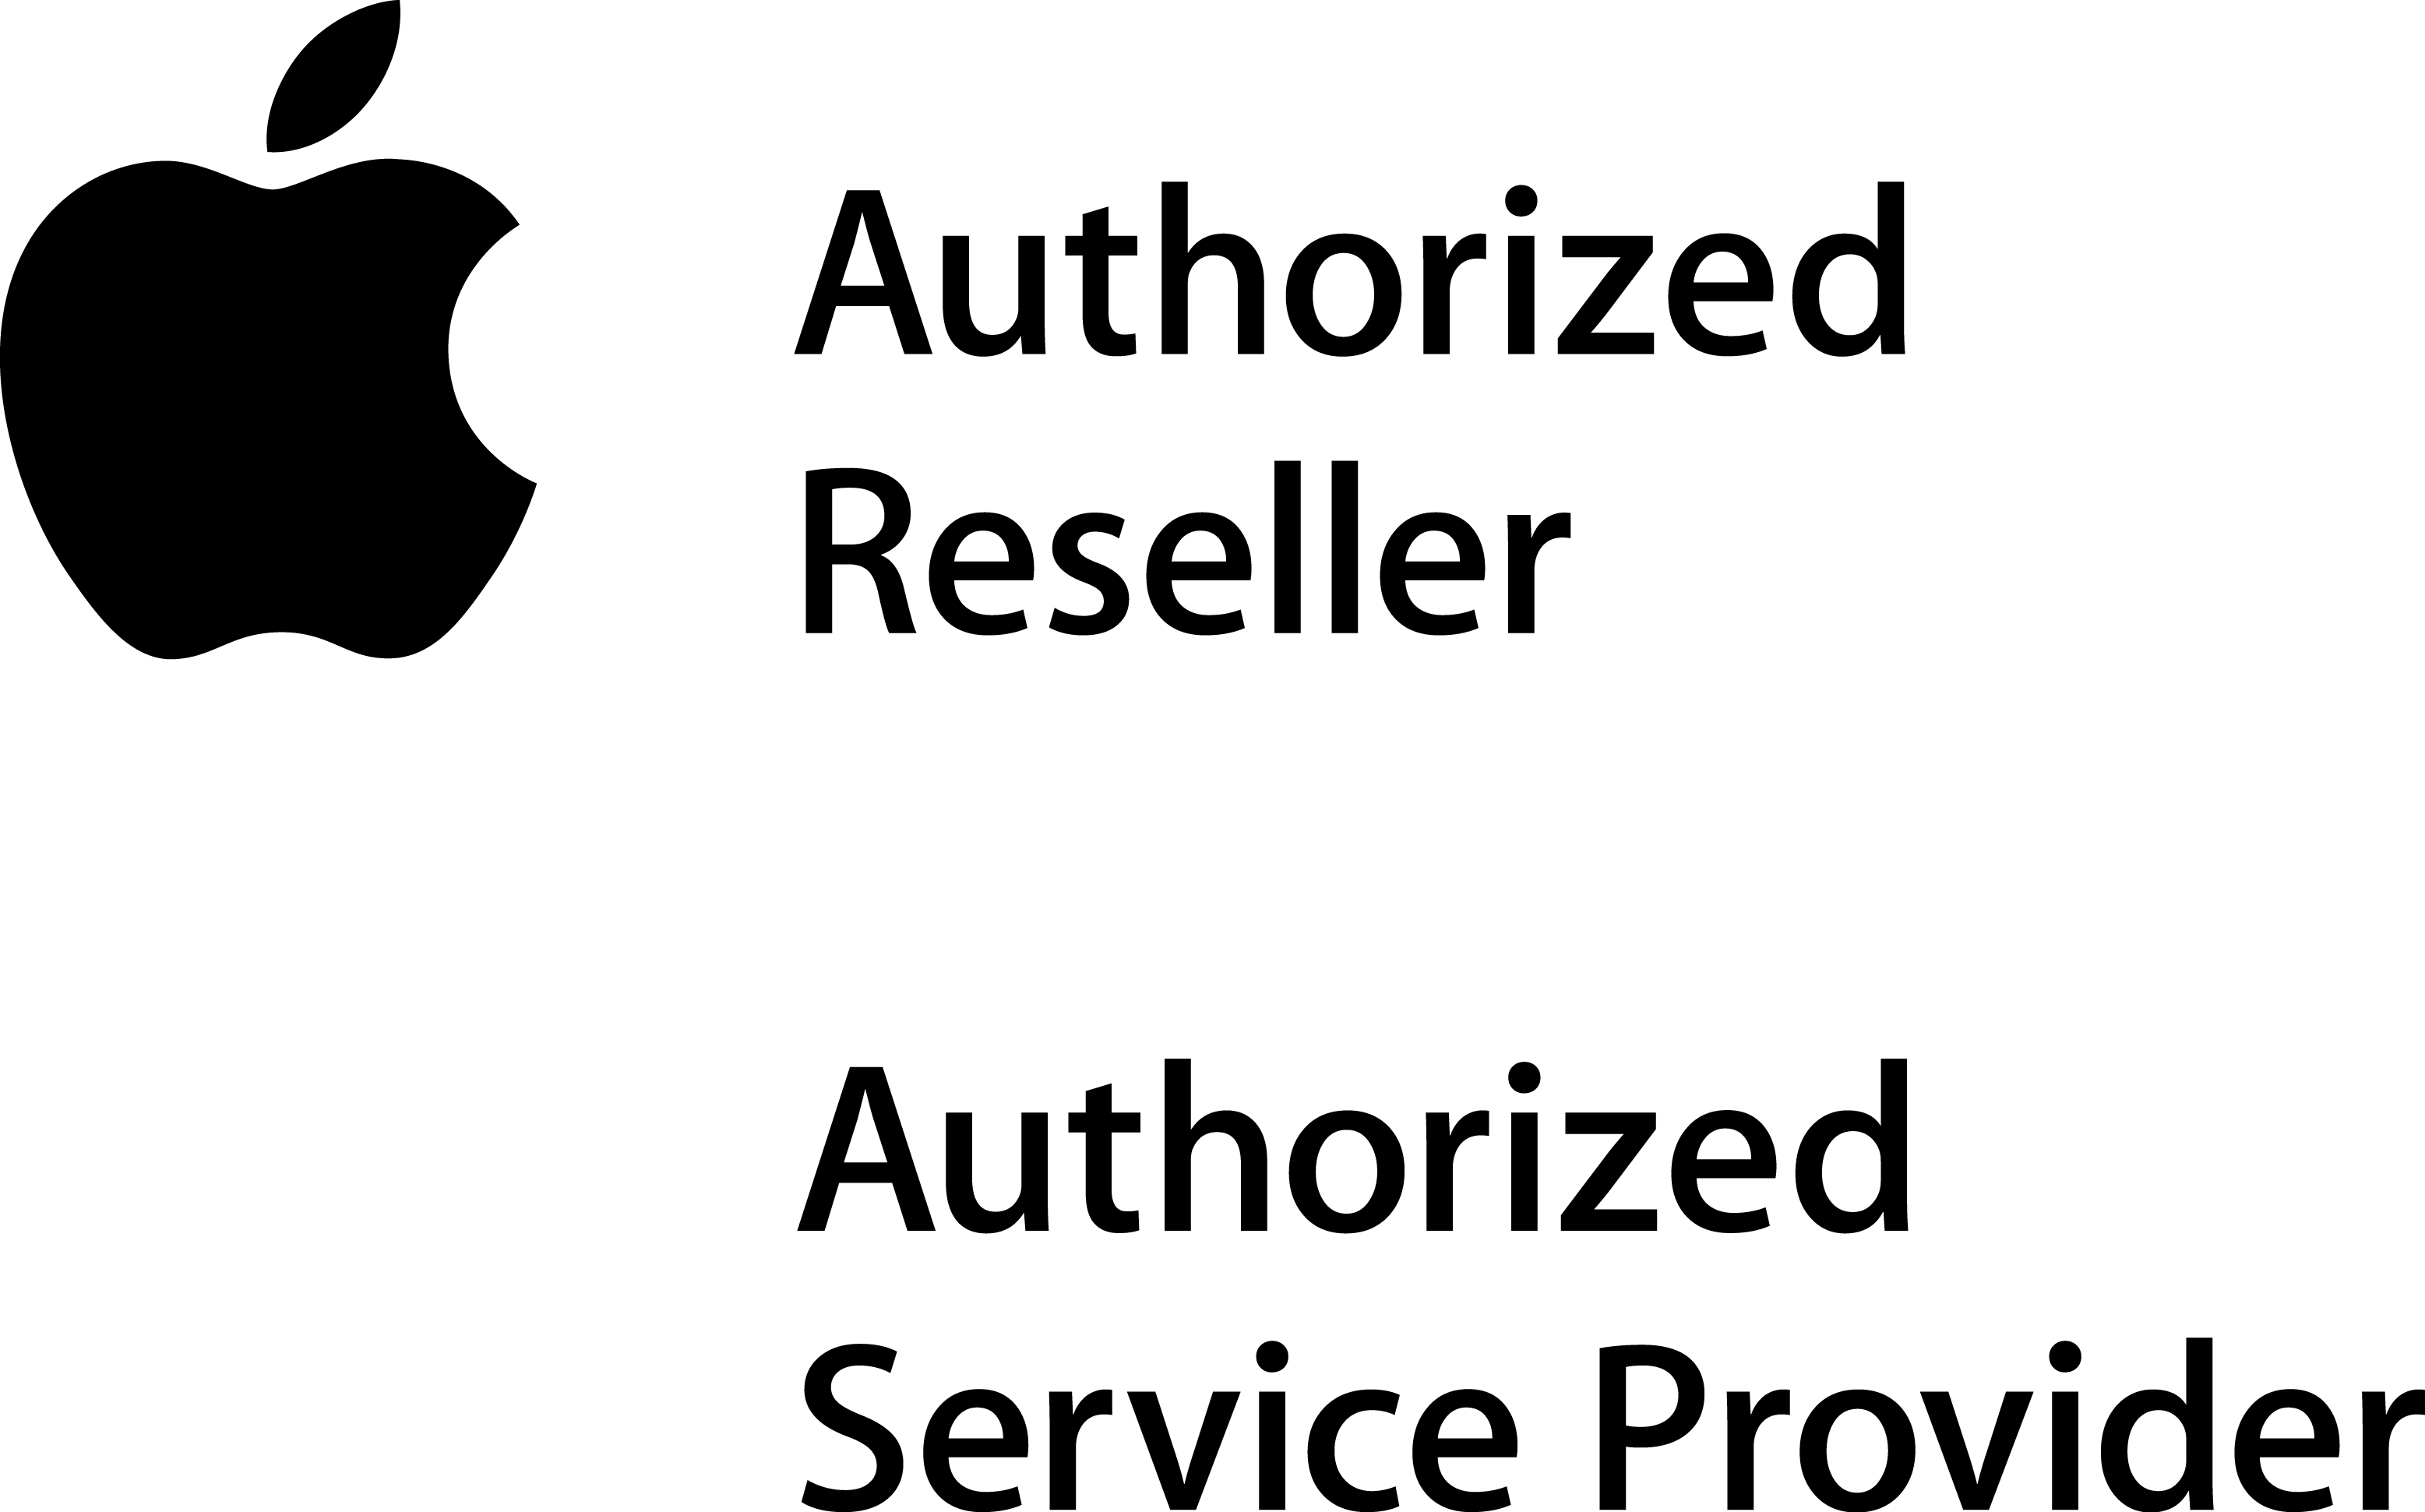 Apple Authorized Reseller And Authorized Service Provider Logo   Apple Authorized Dealer Png - Apple Authorized Reseller, Transparent background PNG HD thumbnail